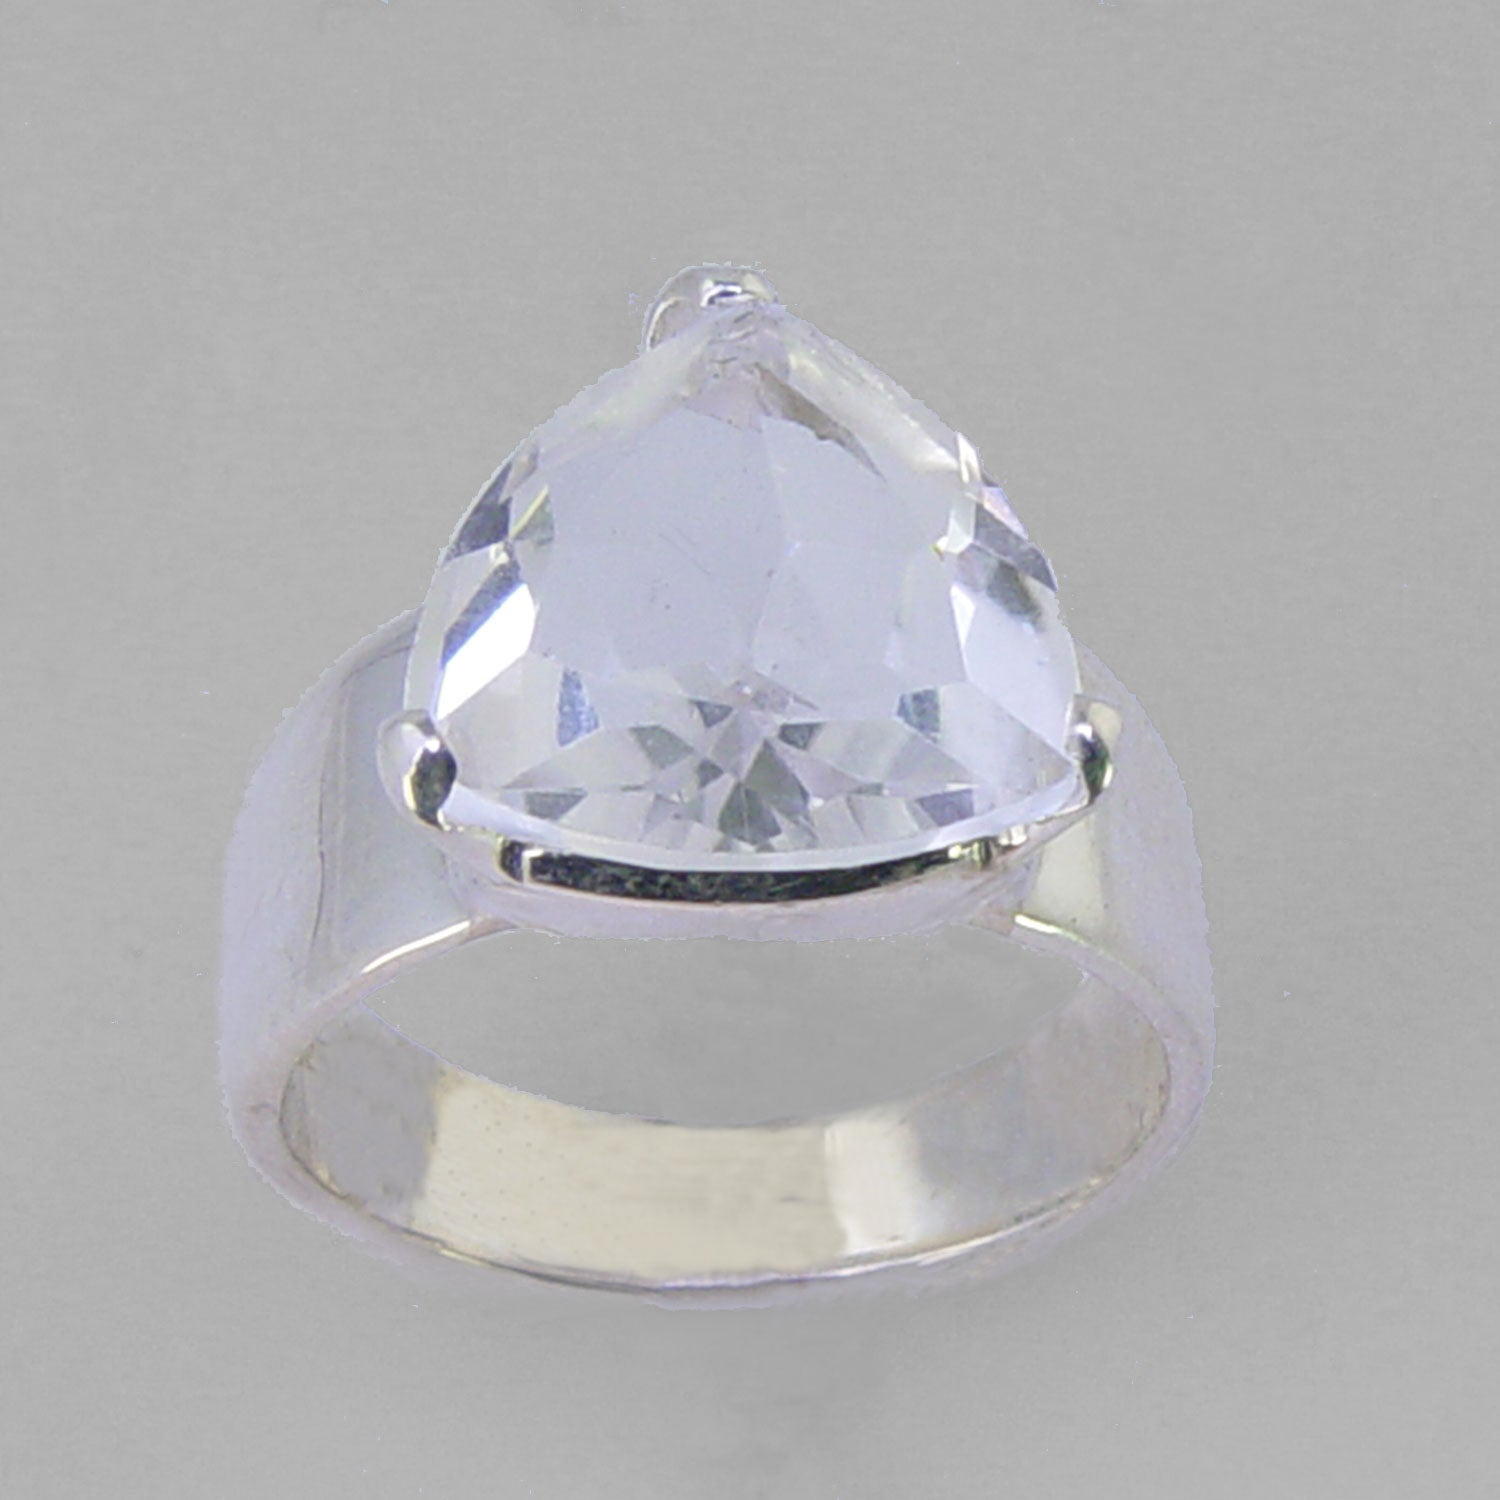 Quartz Crystal 5.72 ct Faceted Trillion Cut Sterling Silver Ring, Size 8.5